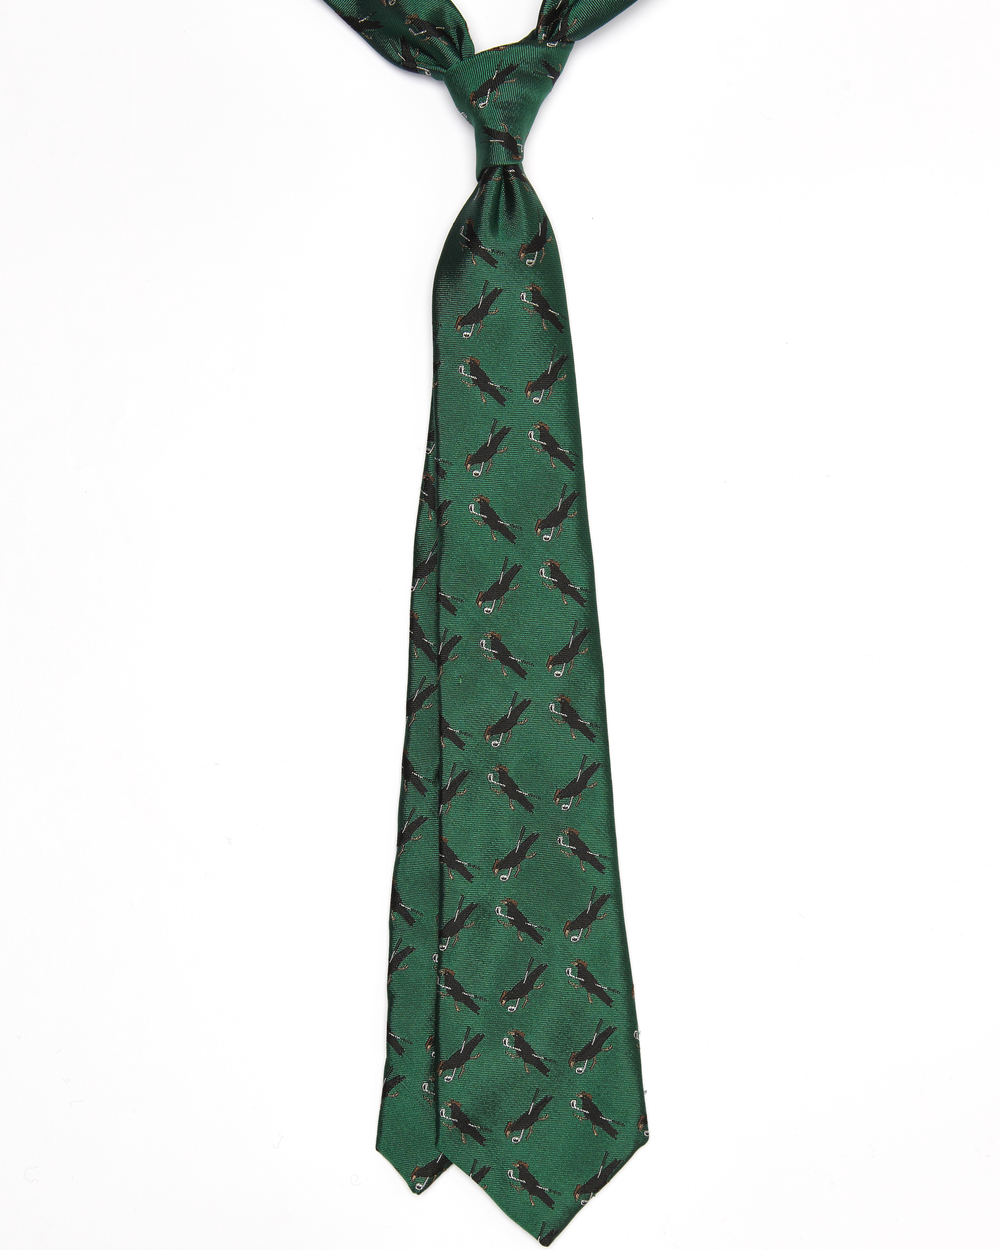 The Ernest tie is suitable for someone who generally wears black clothes and adds bold colours to make a visual statement. This also can be worn to 'lift' a forest green worsted blazer, due to the emerald green colour. This is a good choice for someone who doesn't take themselves too seriously, especially since the patterns of crows playing golf.  Click on photo for more information on this tie.